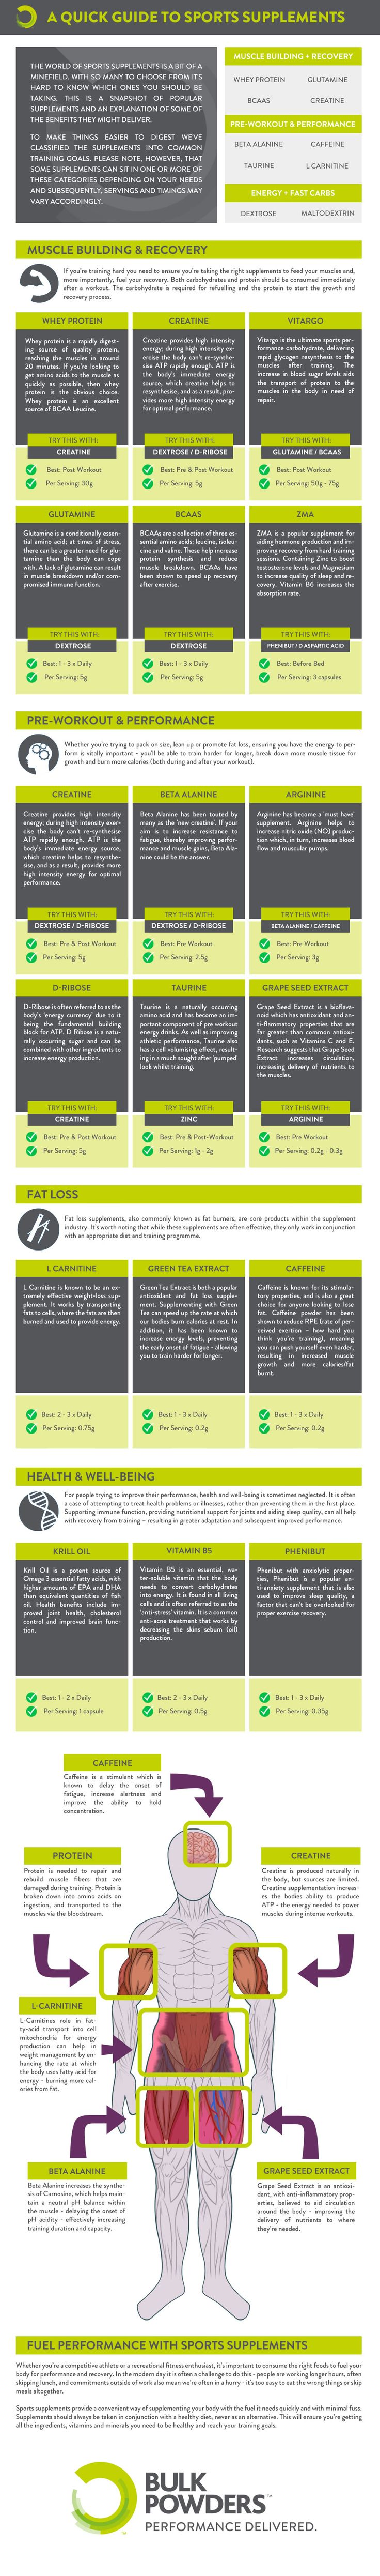 THE BEST SUPPLEMENT TO ENHANCE PERFORMANCE! Tweet Tweet Have you visited fitness sites and YouTube channels lately? They all push certain supplements. You shouldn't take things without knowing what they do to your body. This infographic by bulkpowders.co.uk covers some of the most common sports supplements, their benefits, and the right time to take each: